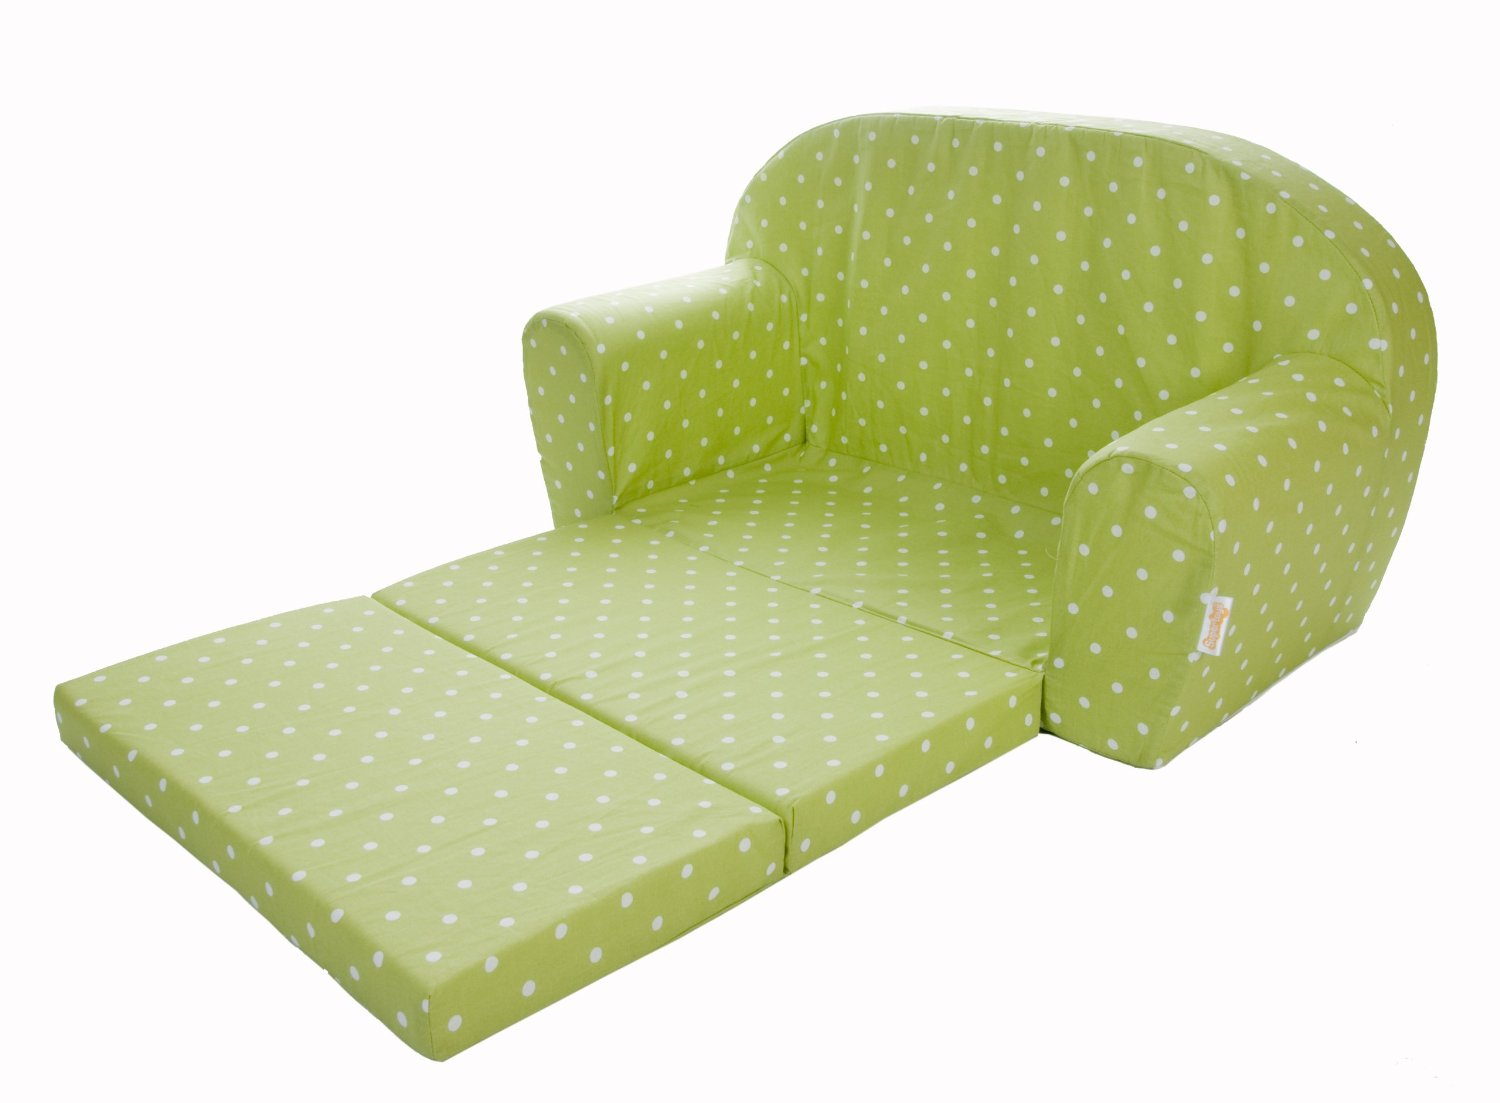 Gepetto Mini Kindersofa Gr 252 N Kindercouch Und Kindersessel